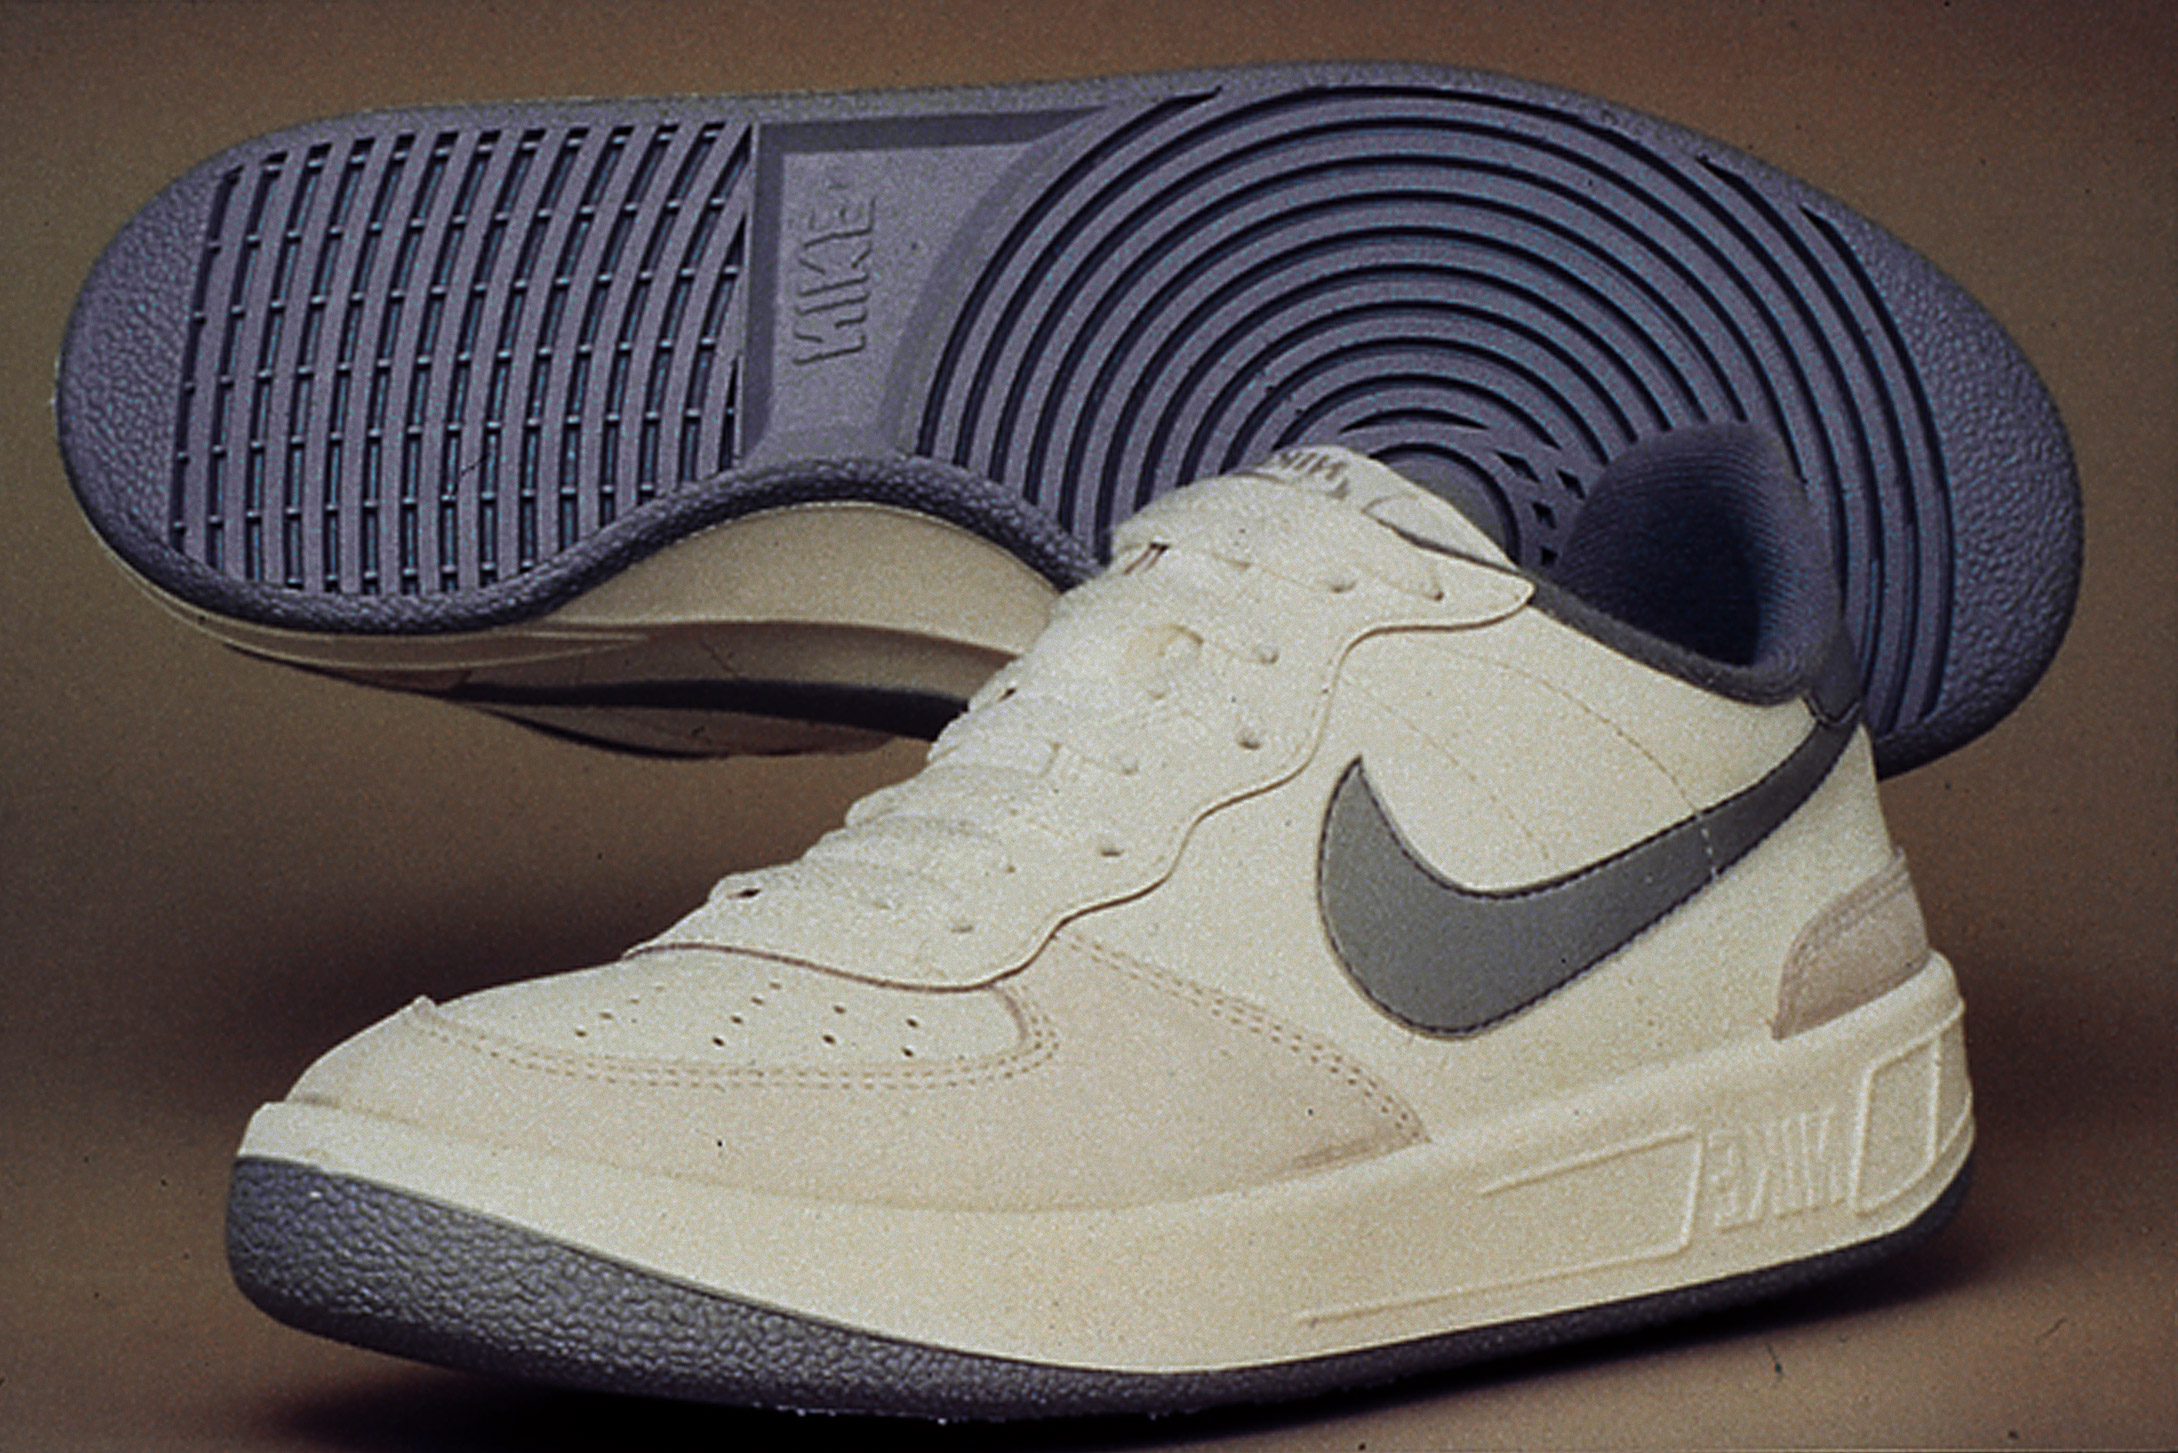 nike shoes 4 5 years chairish dictionary definitions 846136